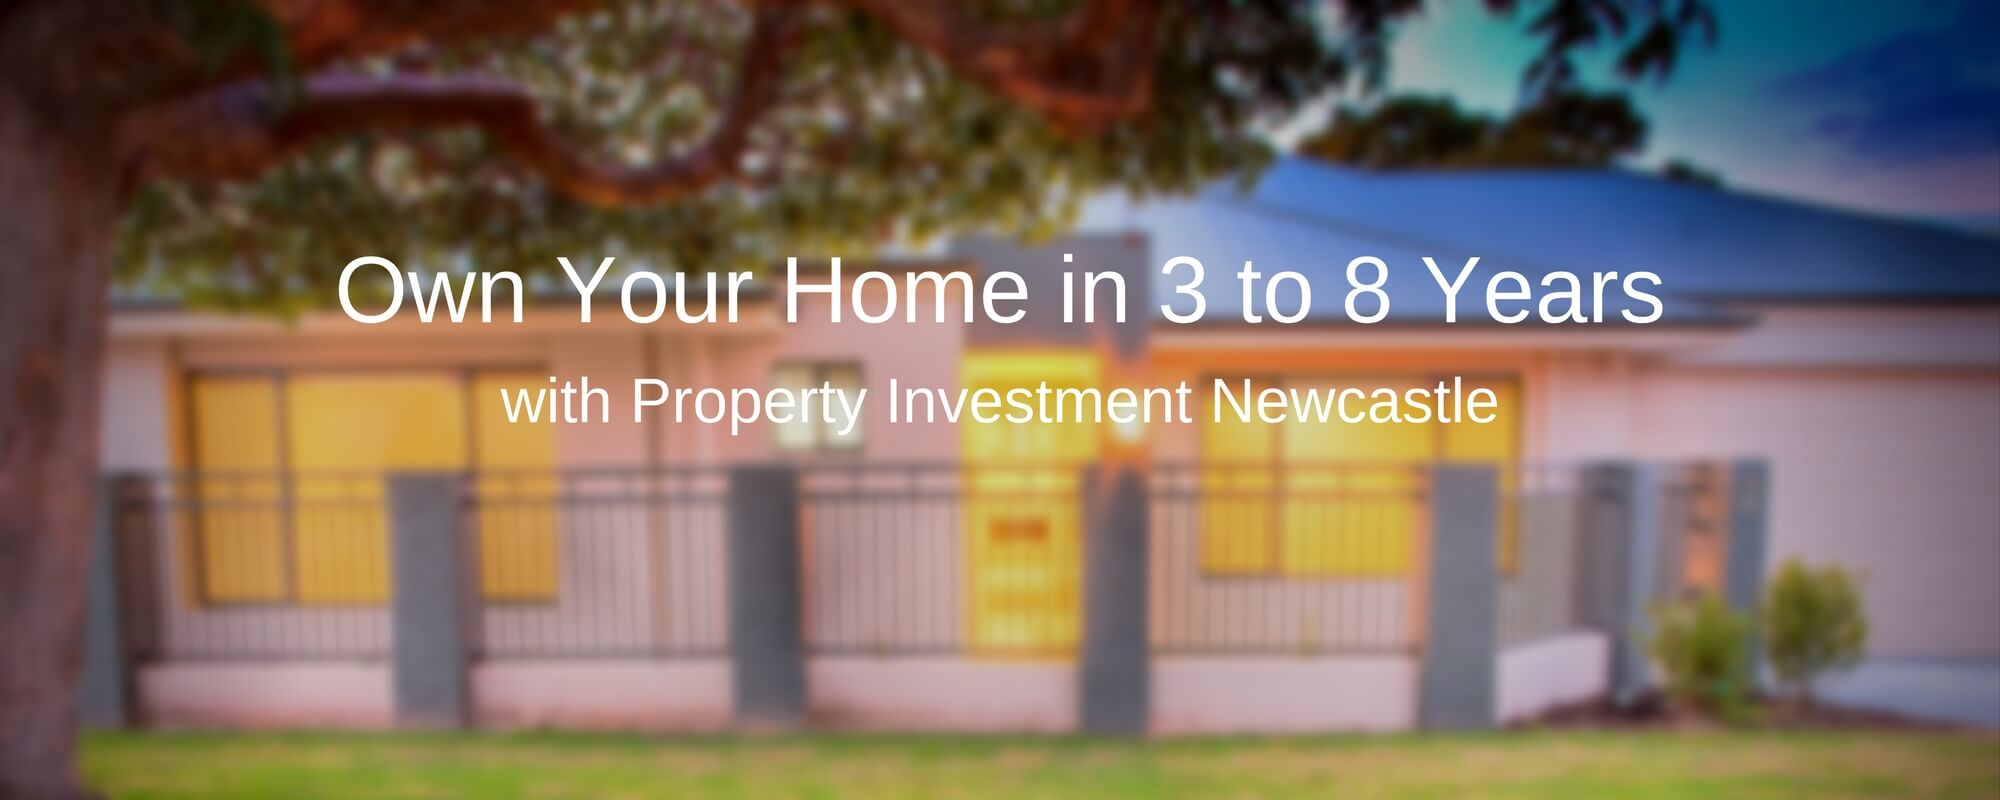 Property Investment Newcastle Banner 2